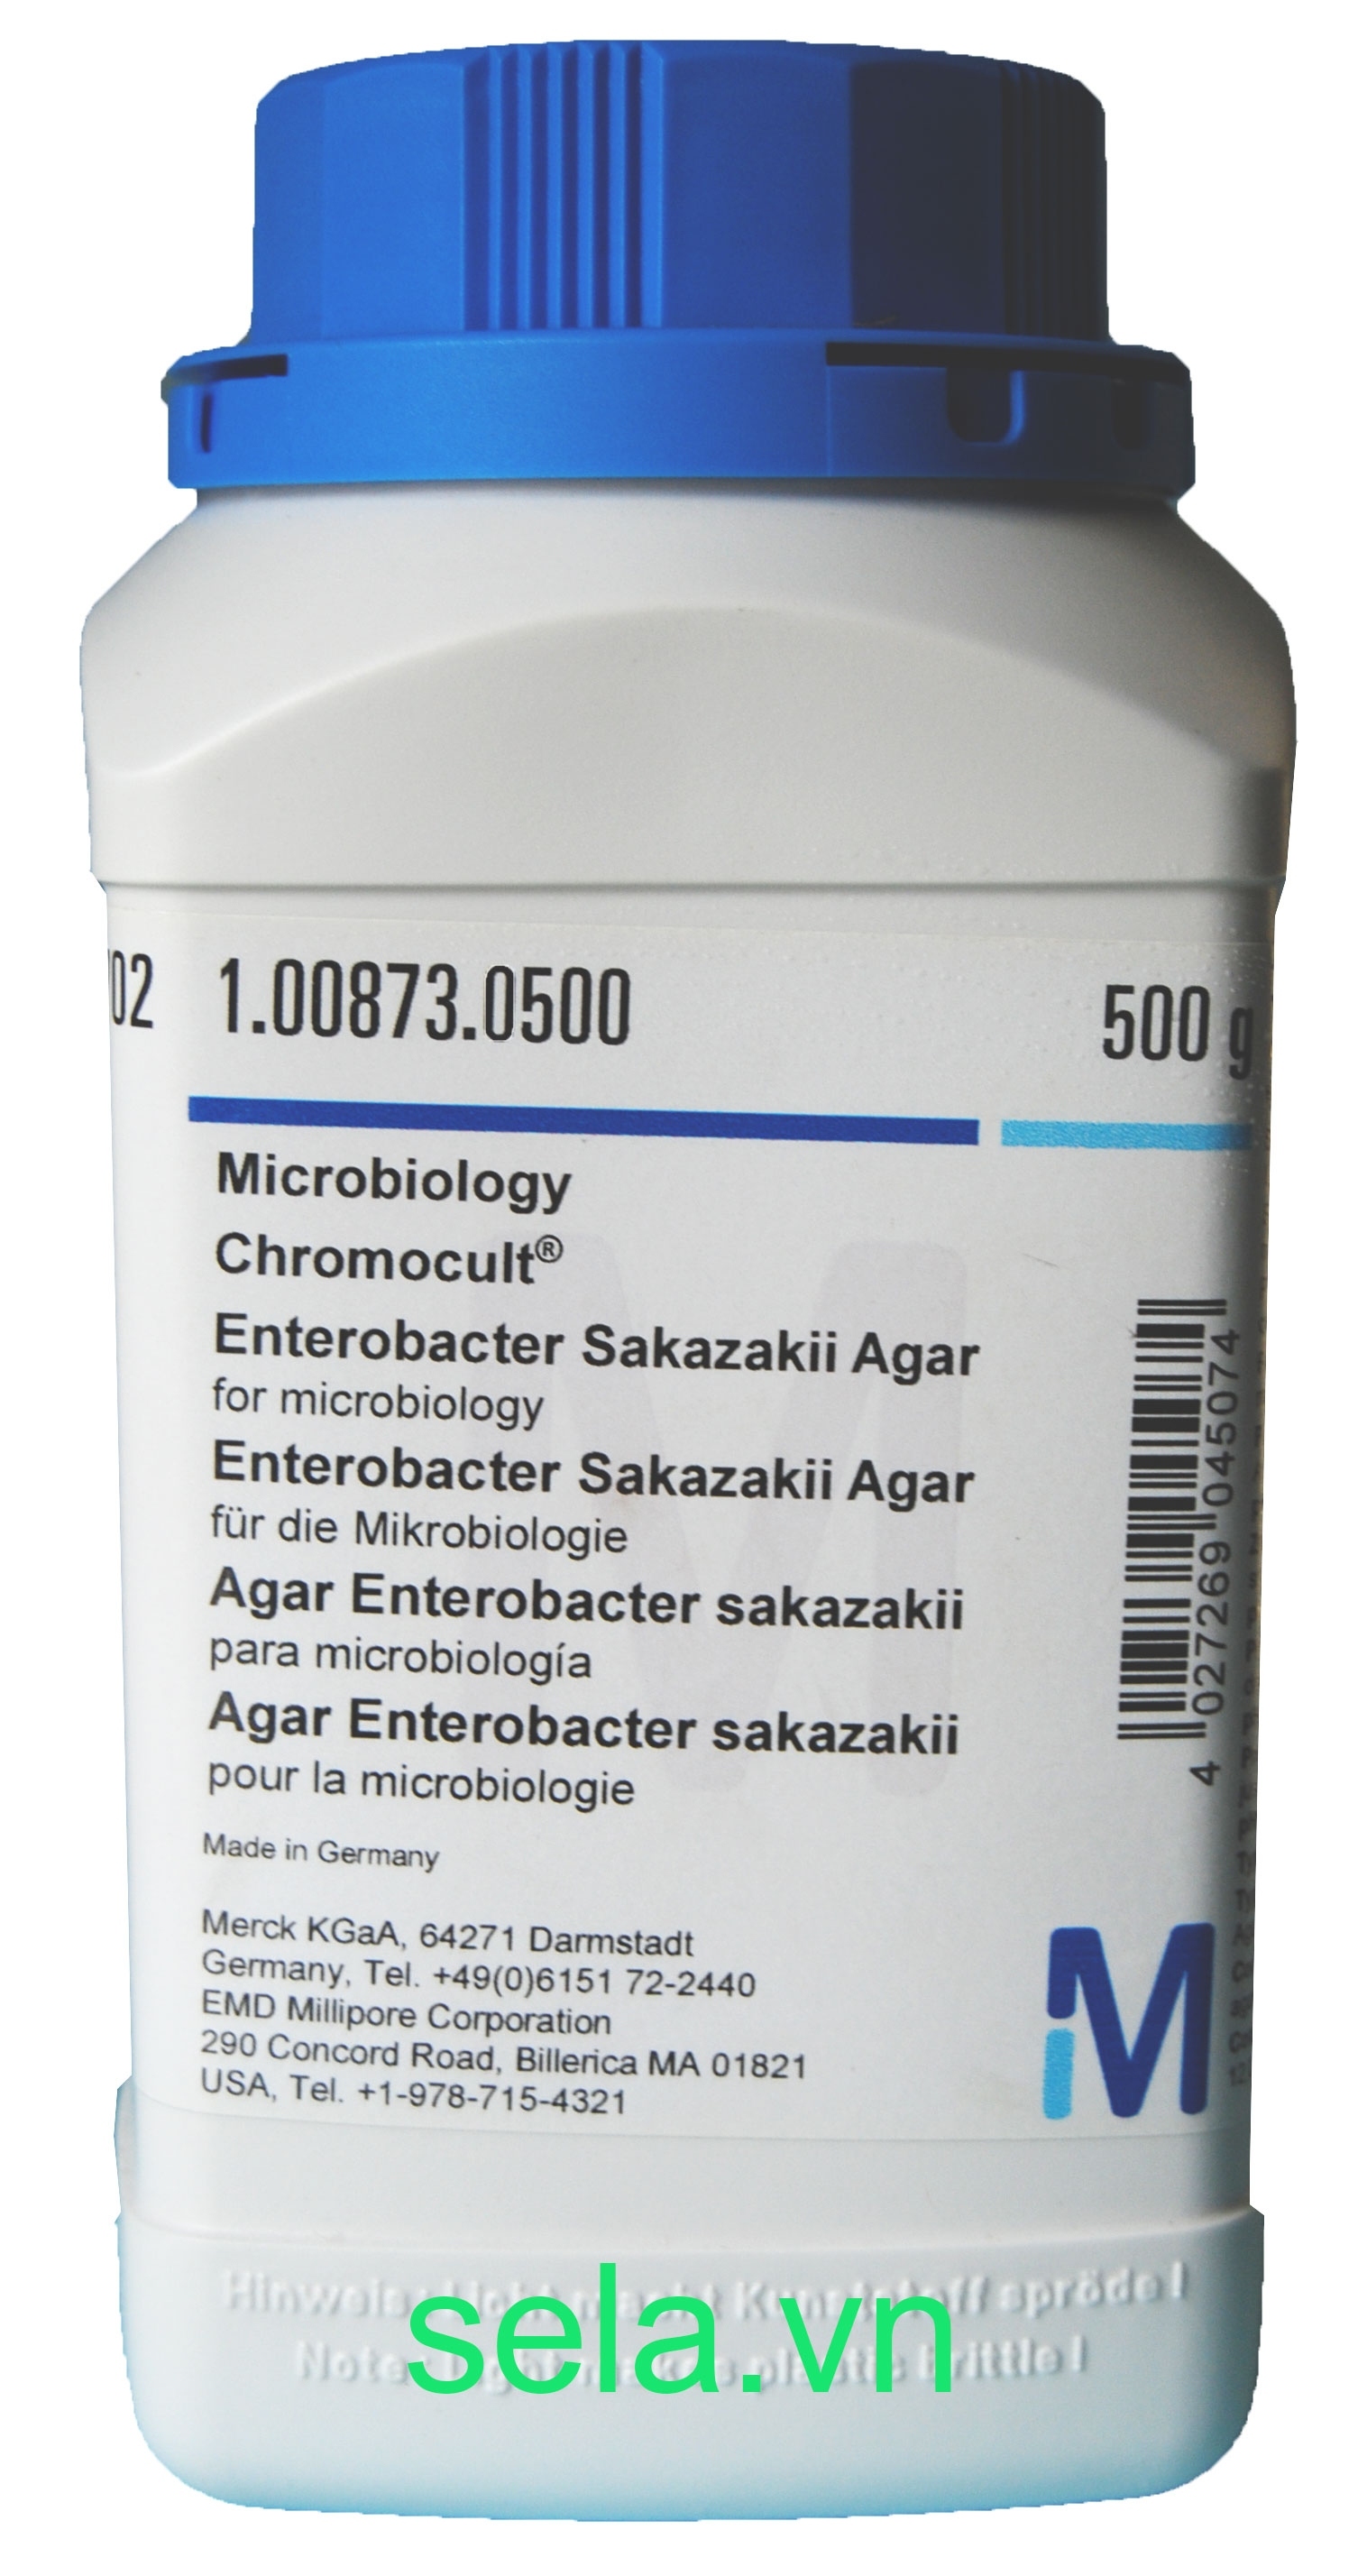 Enterobacter Sakazakii Agar for microbiology Chromocult®